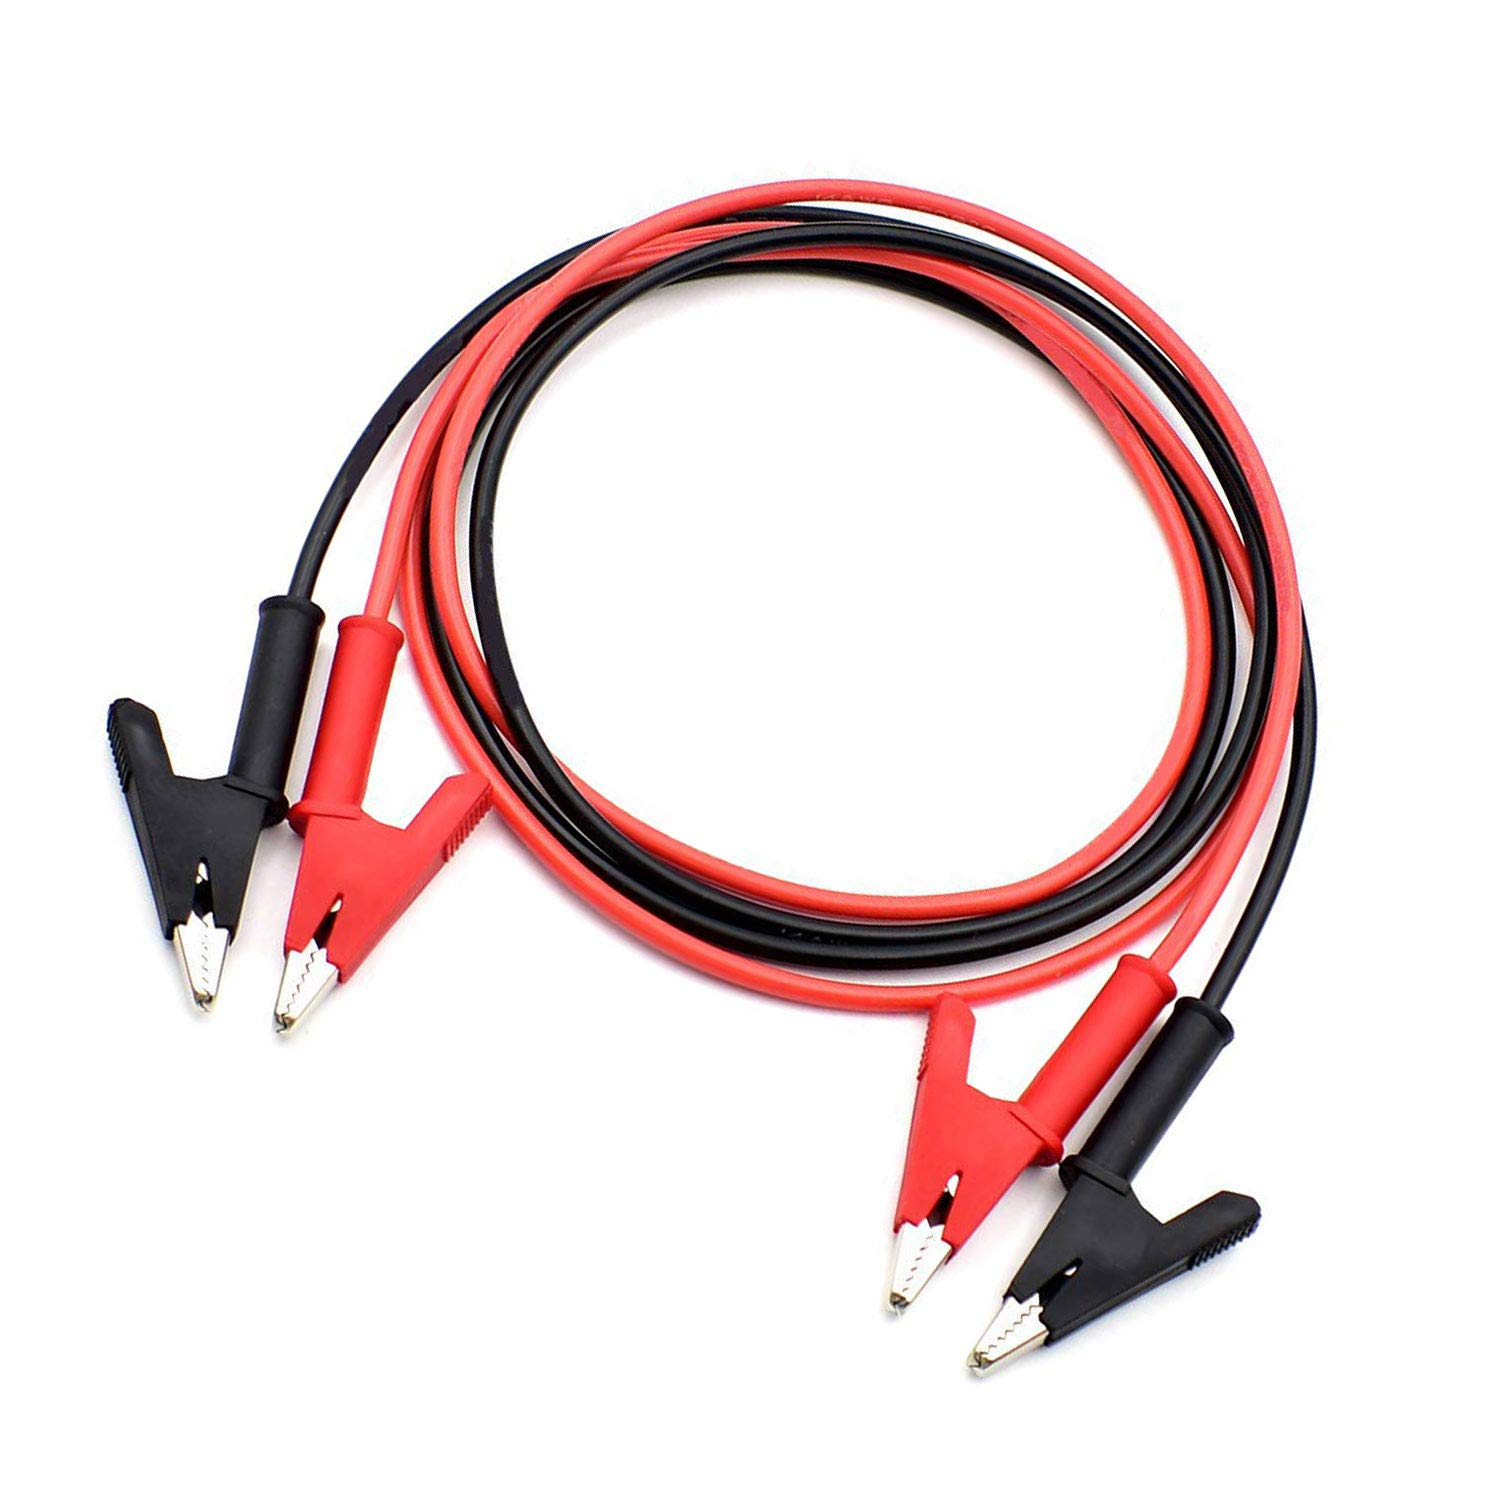 Details about  /6pcs custom made 18awg alligator clips cable jumper wire test leads